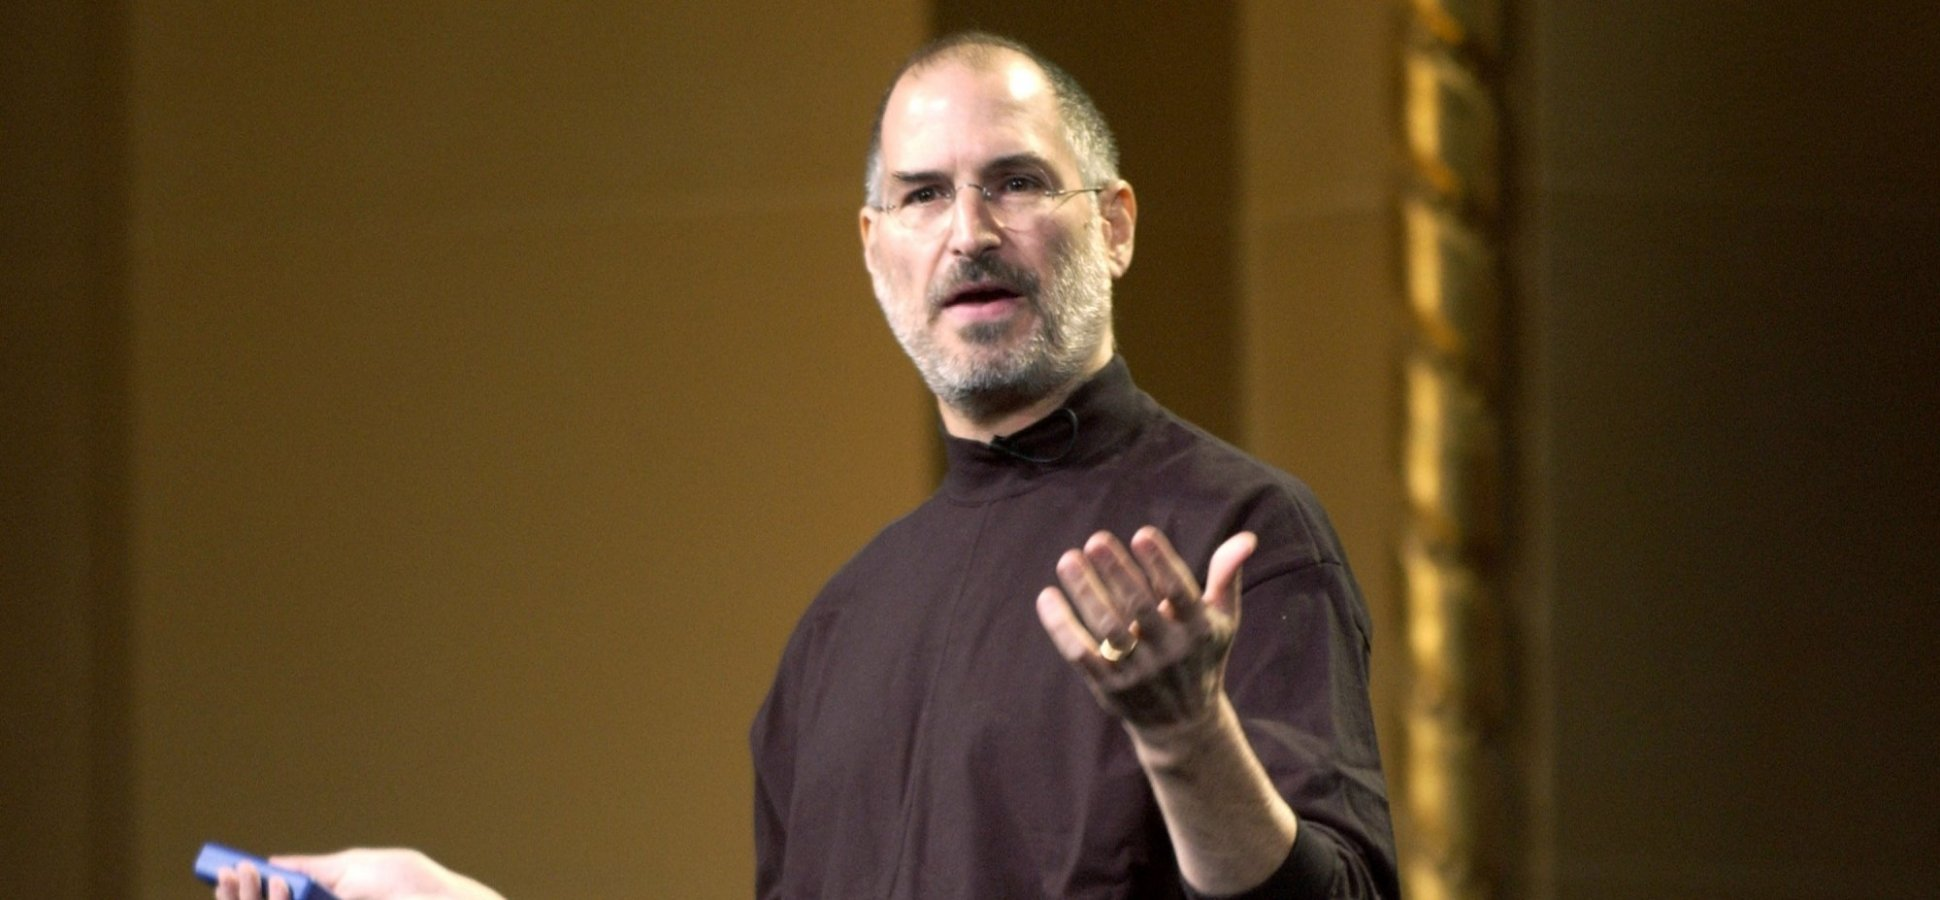 Steve Jobs Used This Rare 30 Percent Rule to Reinvent Apple When the Company Was on the Ropes